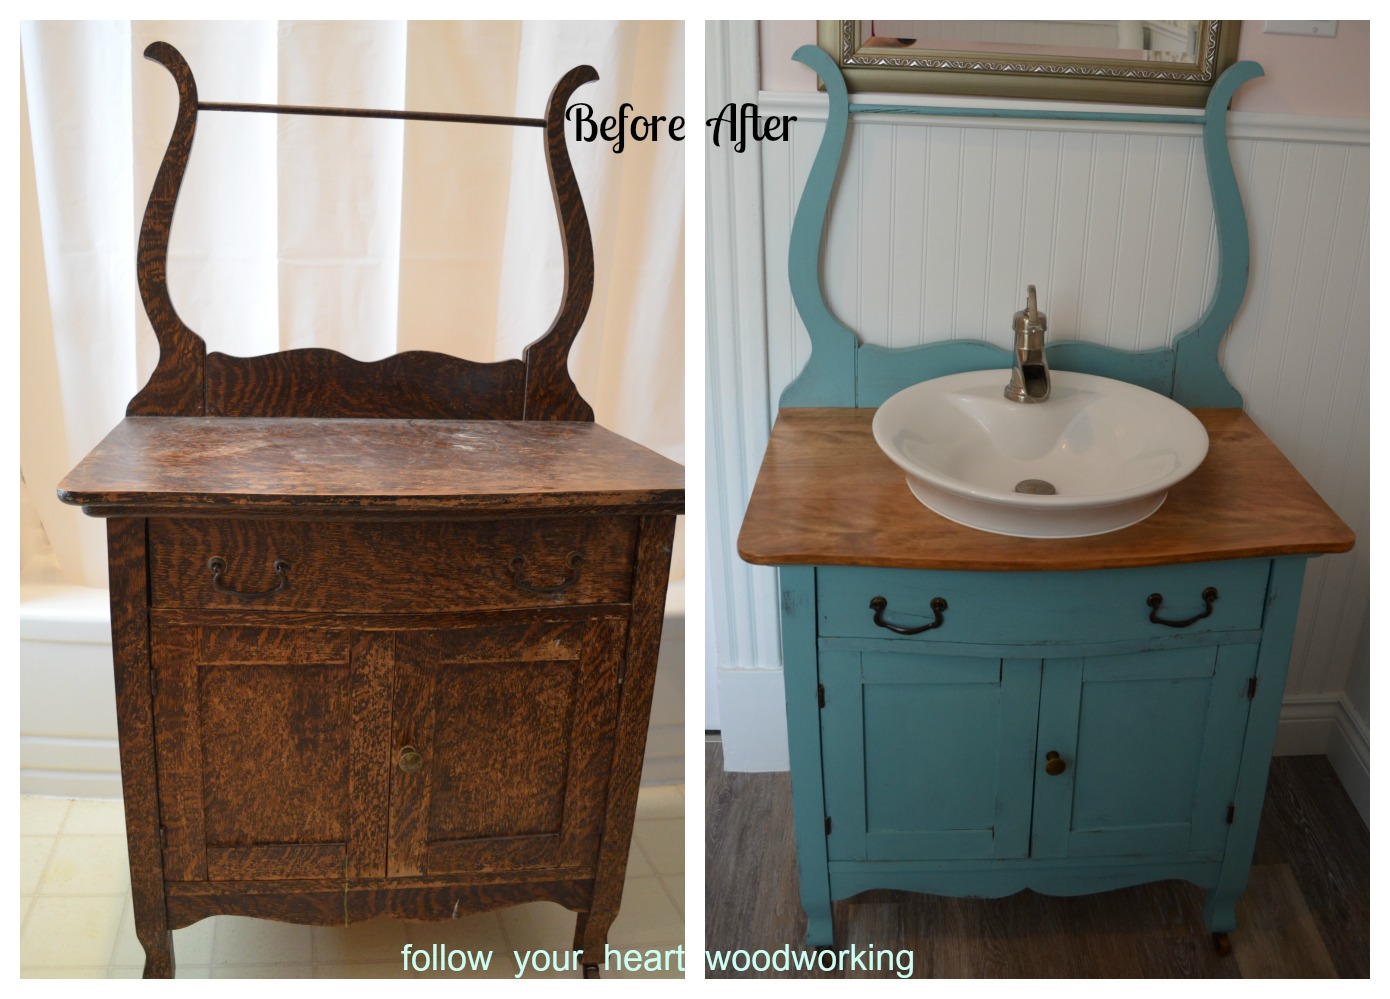 Follow your heart woodworking bathroom renovation part 5 the commode tur - Commode noir et blanc ...